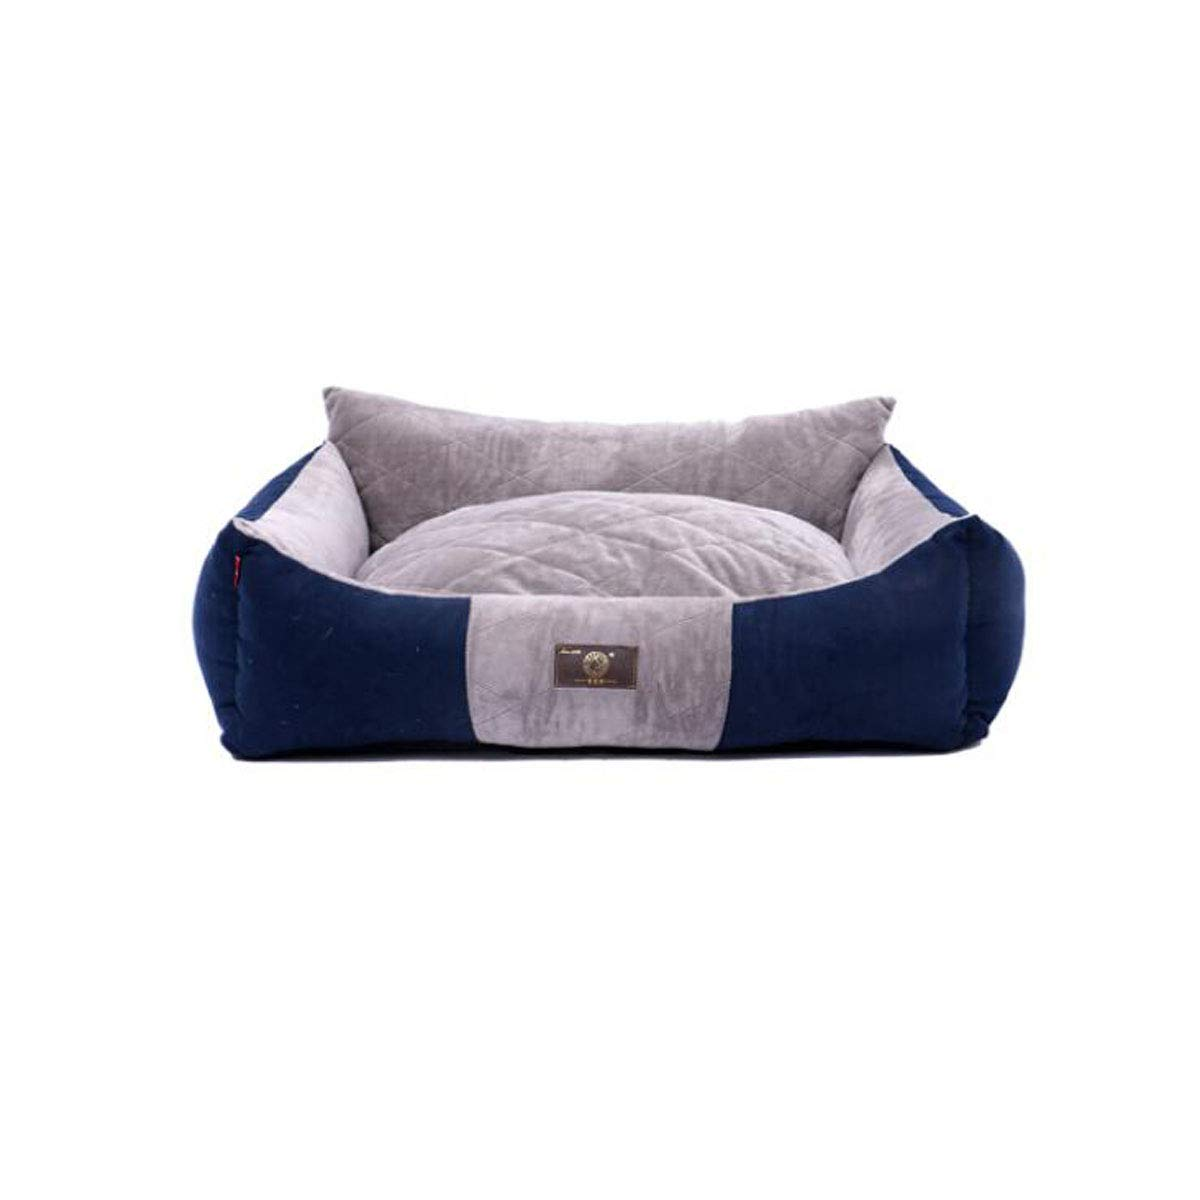 8haowenju High Backrest, Fully Removable And Washable Environmentally Friendly 3D PP Cotton, Comfortable And Soft Pet Bed, golden Wool Husky Kennel Quilted Kennel bluee XL Comfortable and comfortable